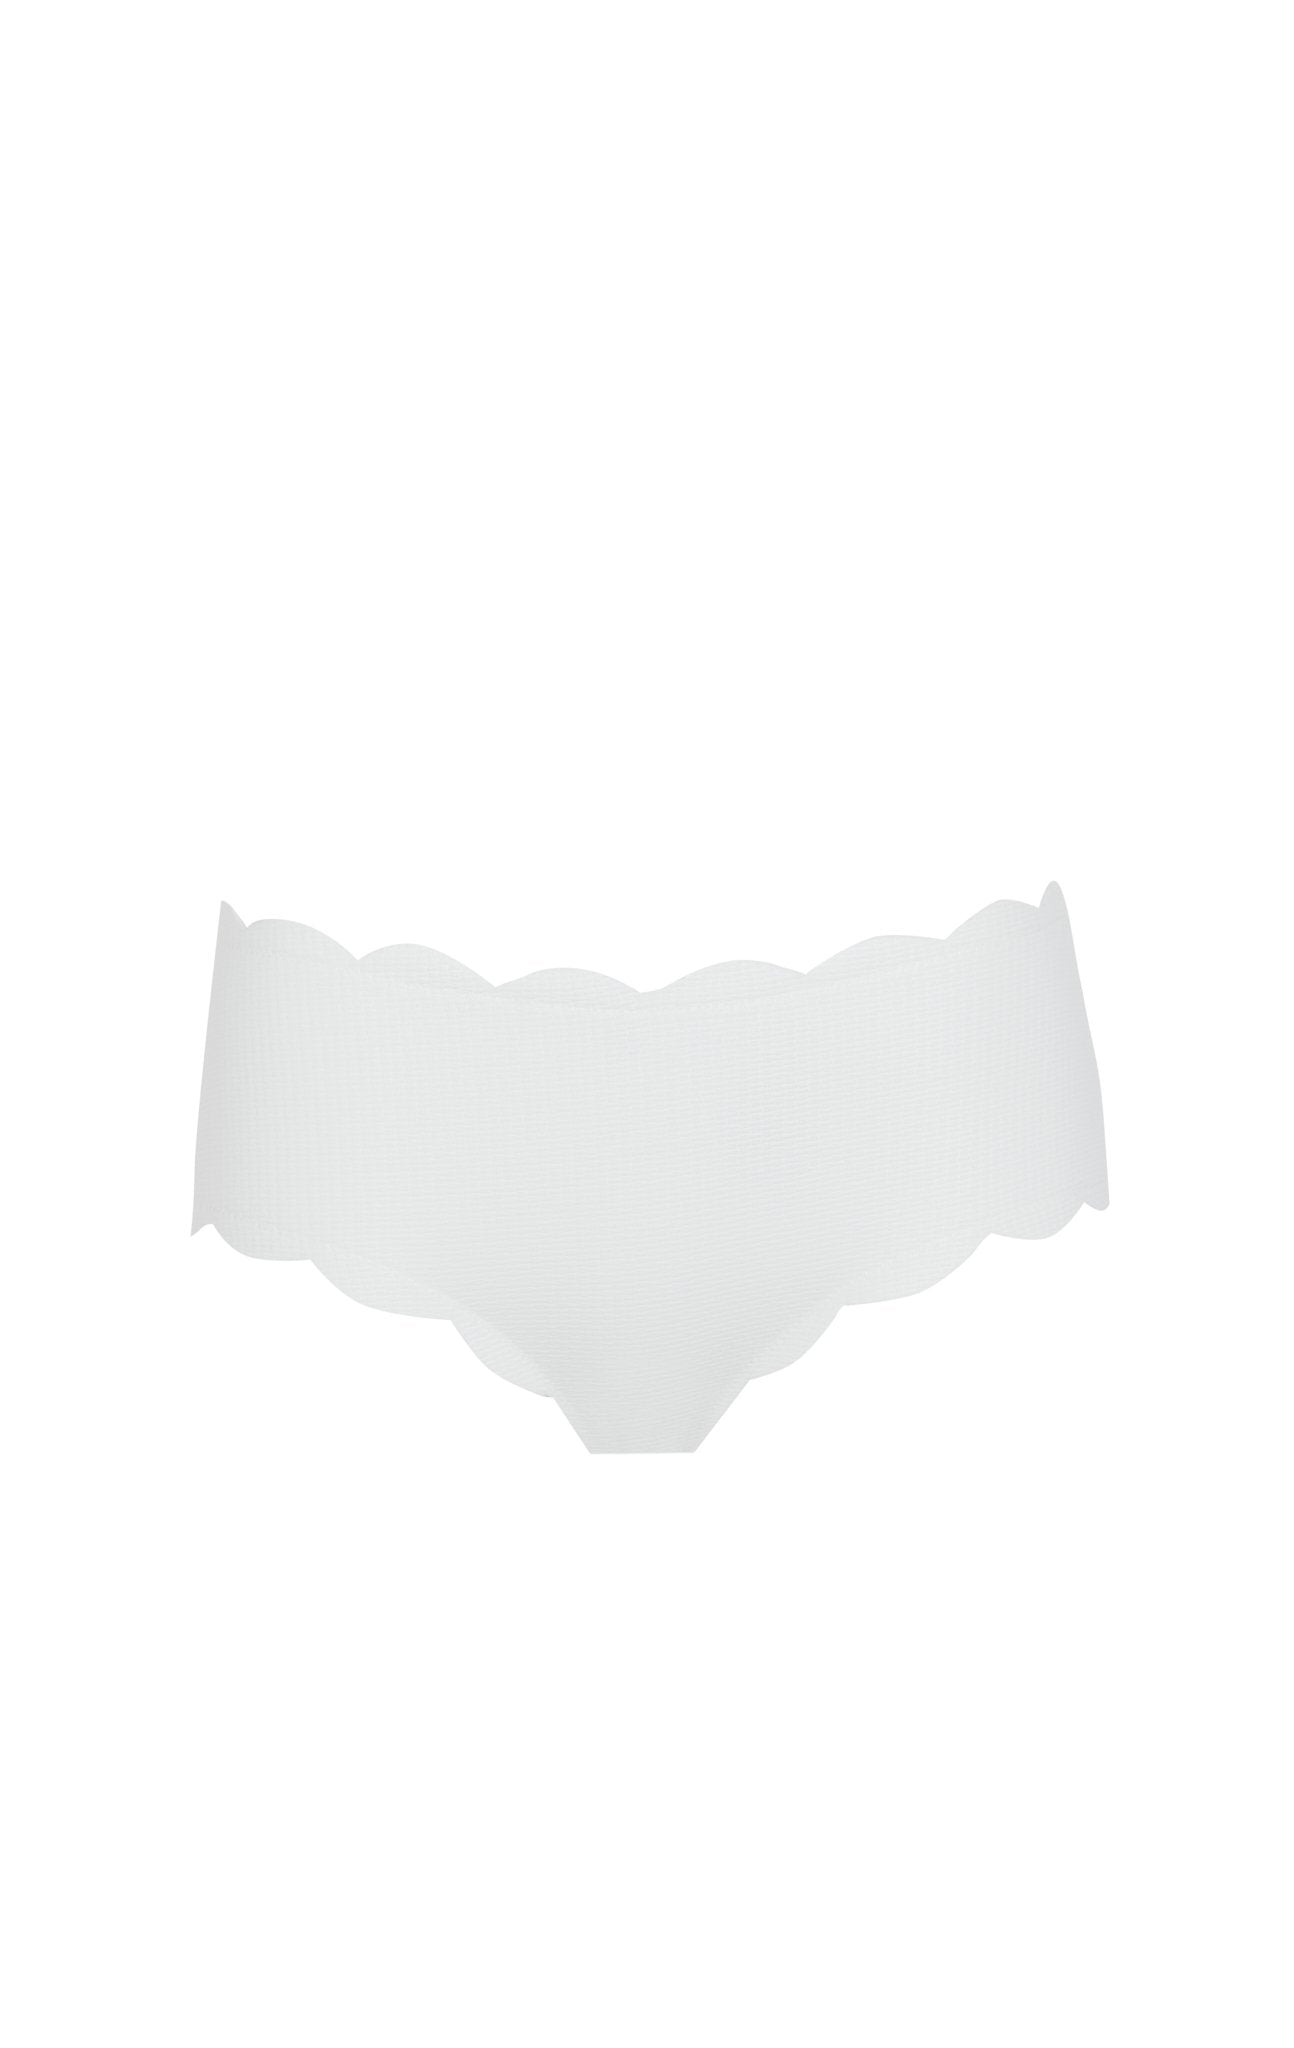 SWIMCLEAN Sustainable Spring Bottom in Coconut